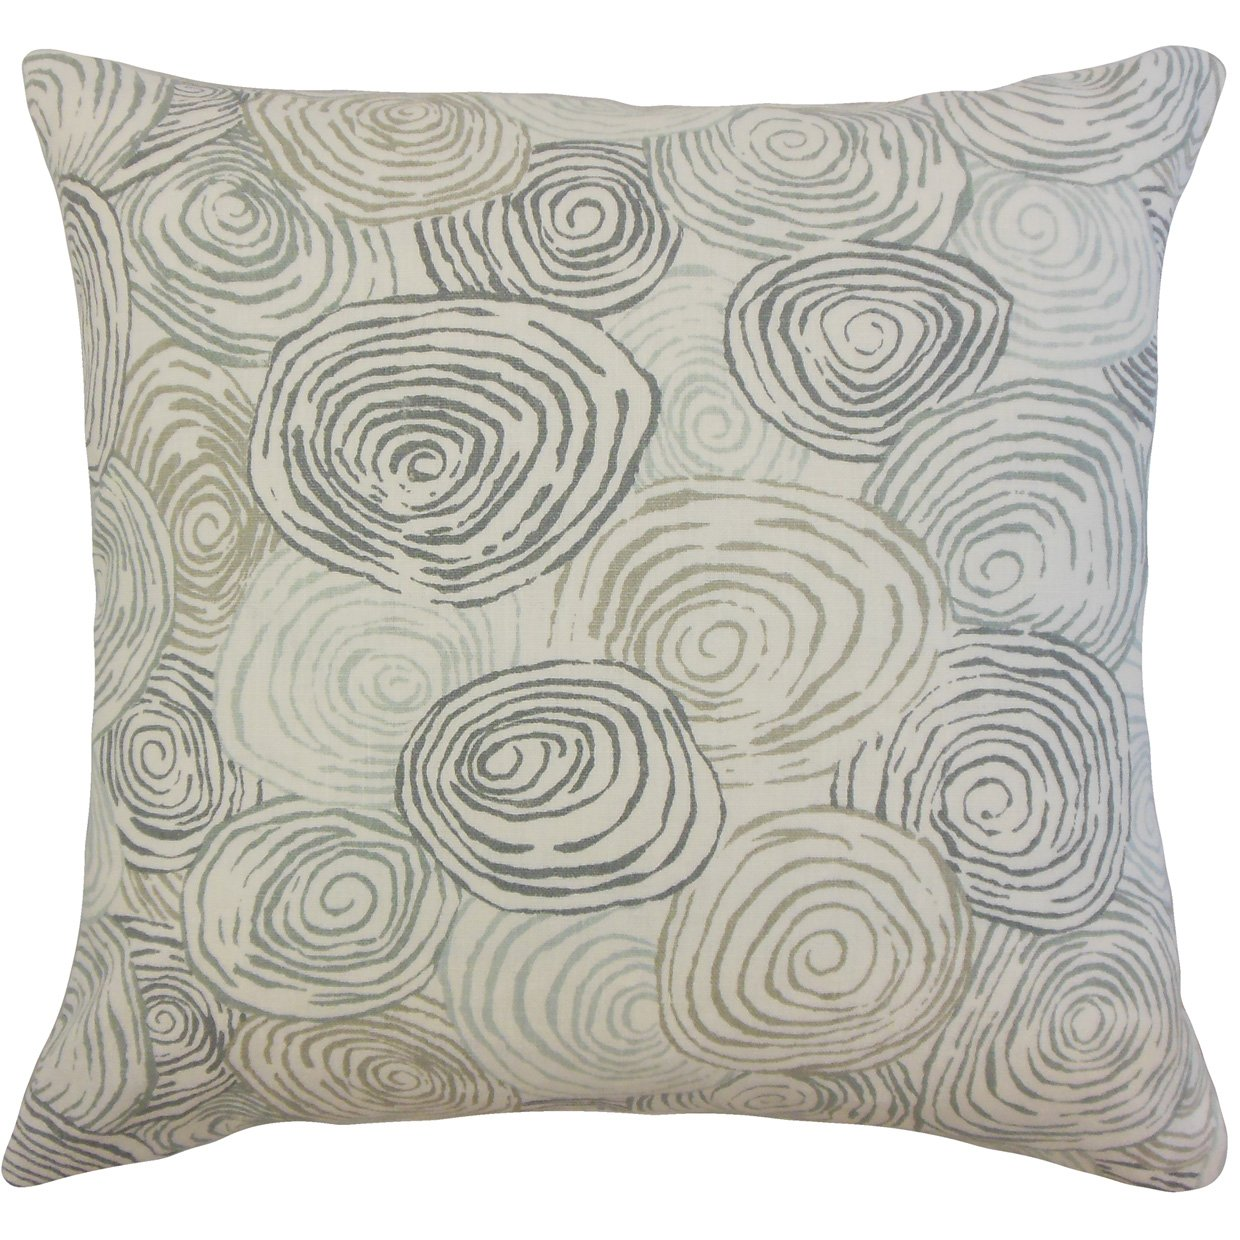 The Pillow Collection P18-PT-SPIROGYRO-MINERAL-L100 Blakesley Graphic Pillow Mineral